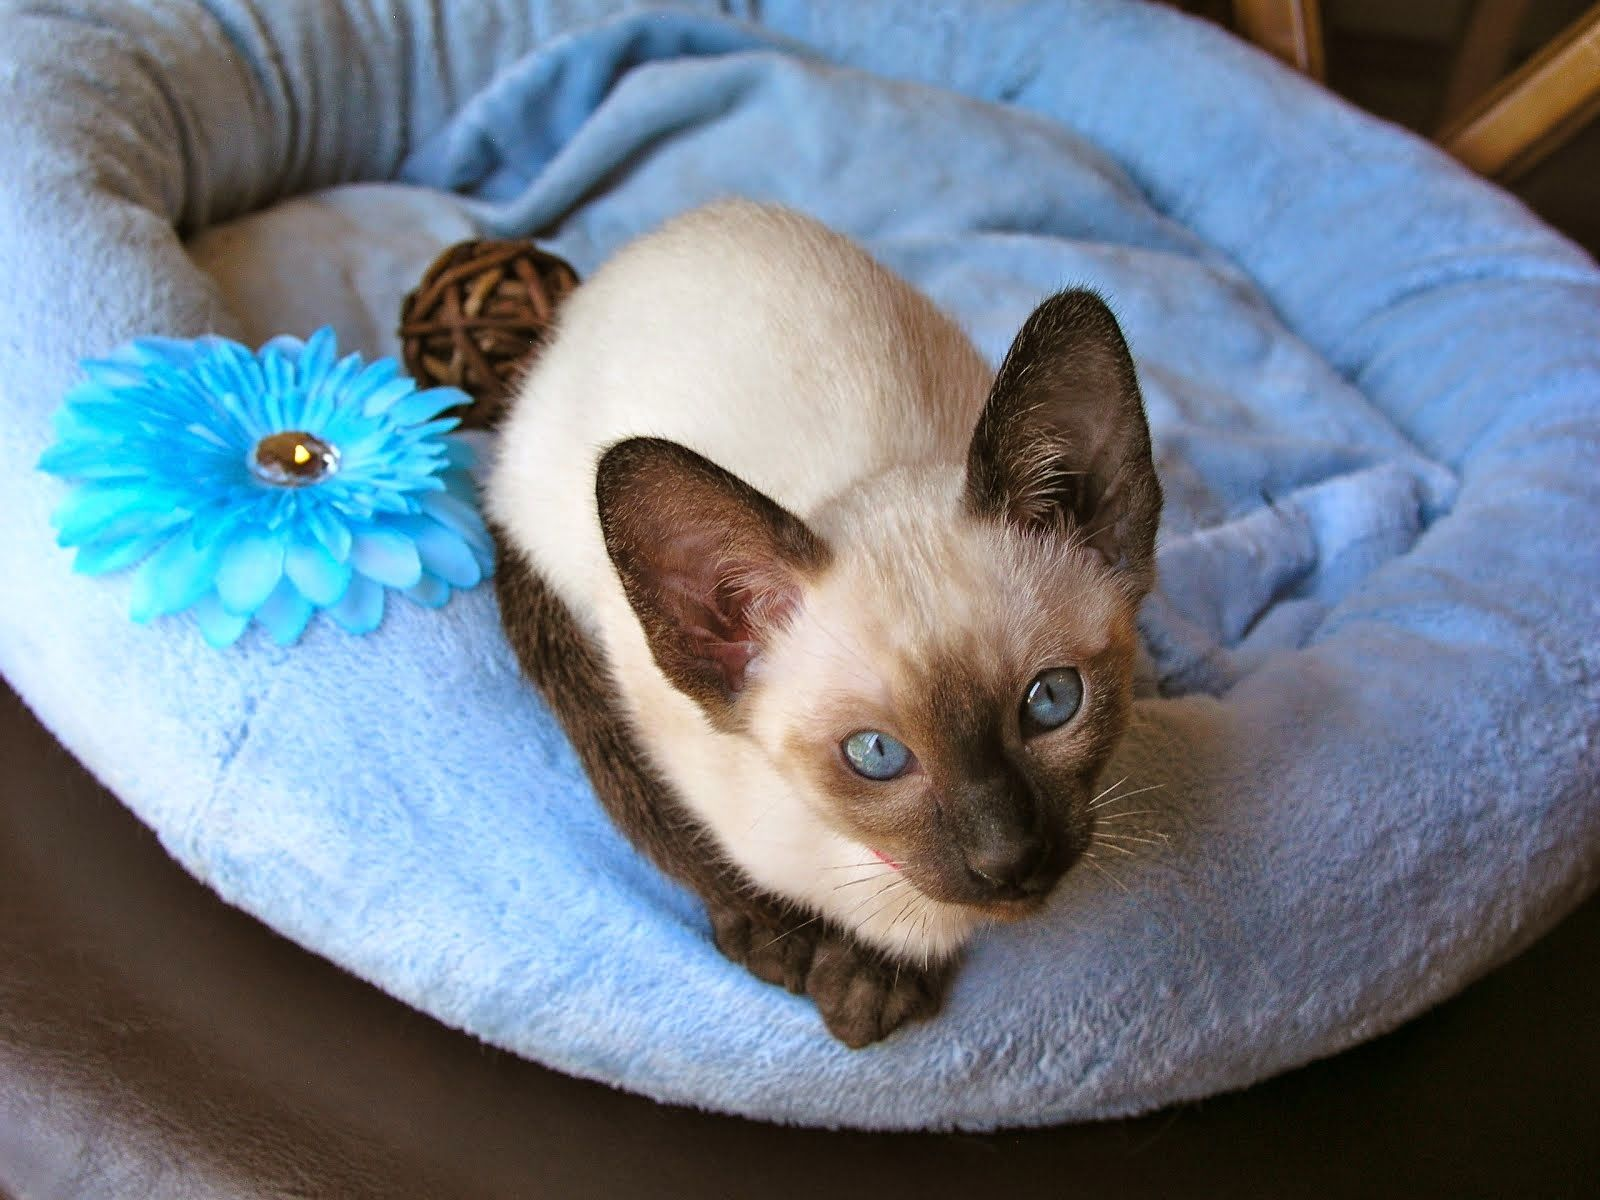 Carolina Blues Cattery Siamese Kittens For Sale Siamese Cats For Sale Siamese Kittens Kitten For Sale